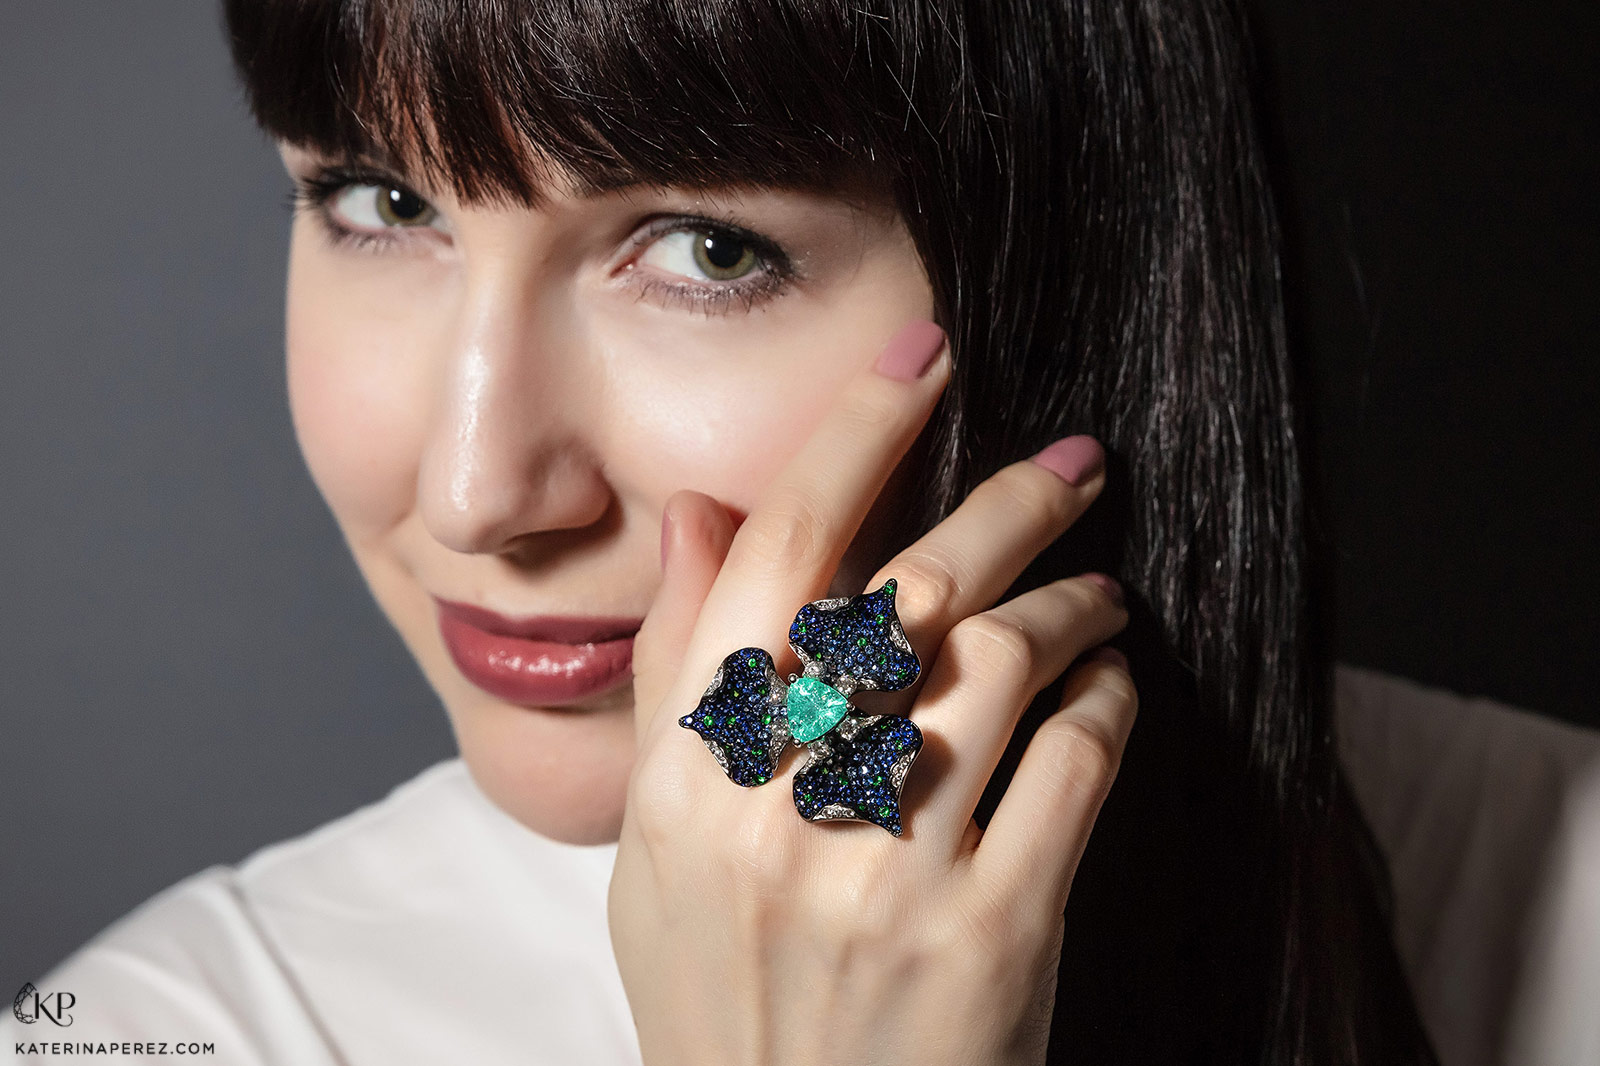 Alexander Laut 'Blue Lily' ring with 5ct Paraiba type tourmaline, sapphires, tsavorites, and diamonds